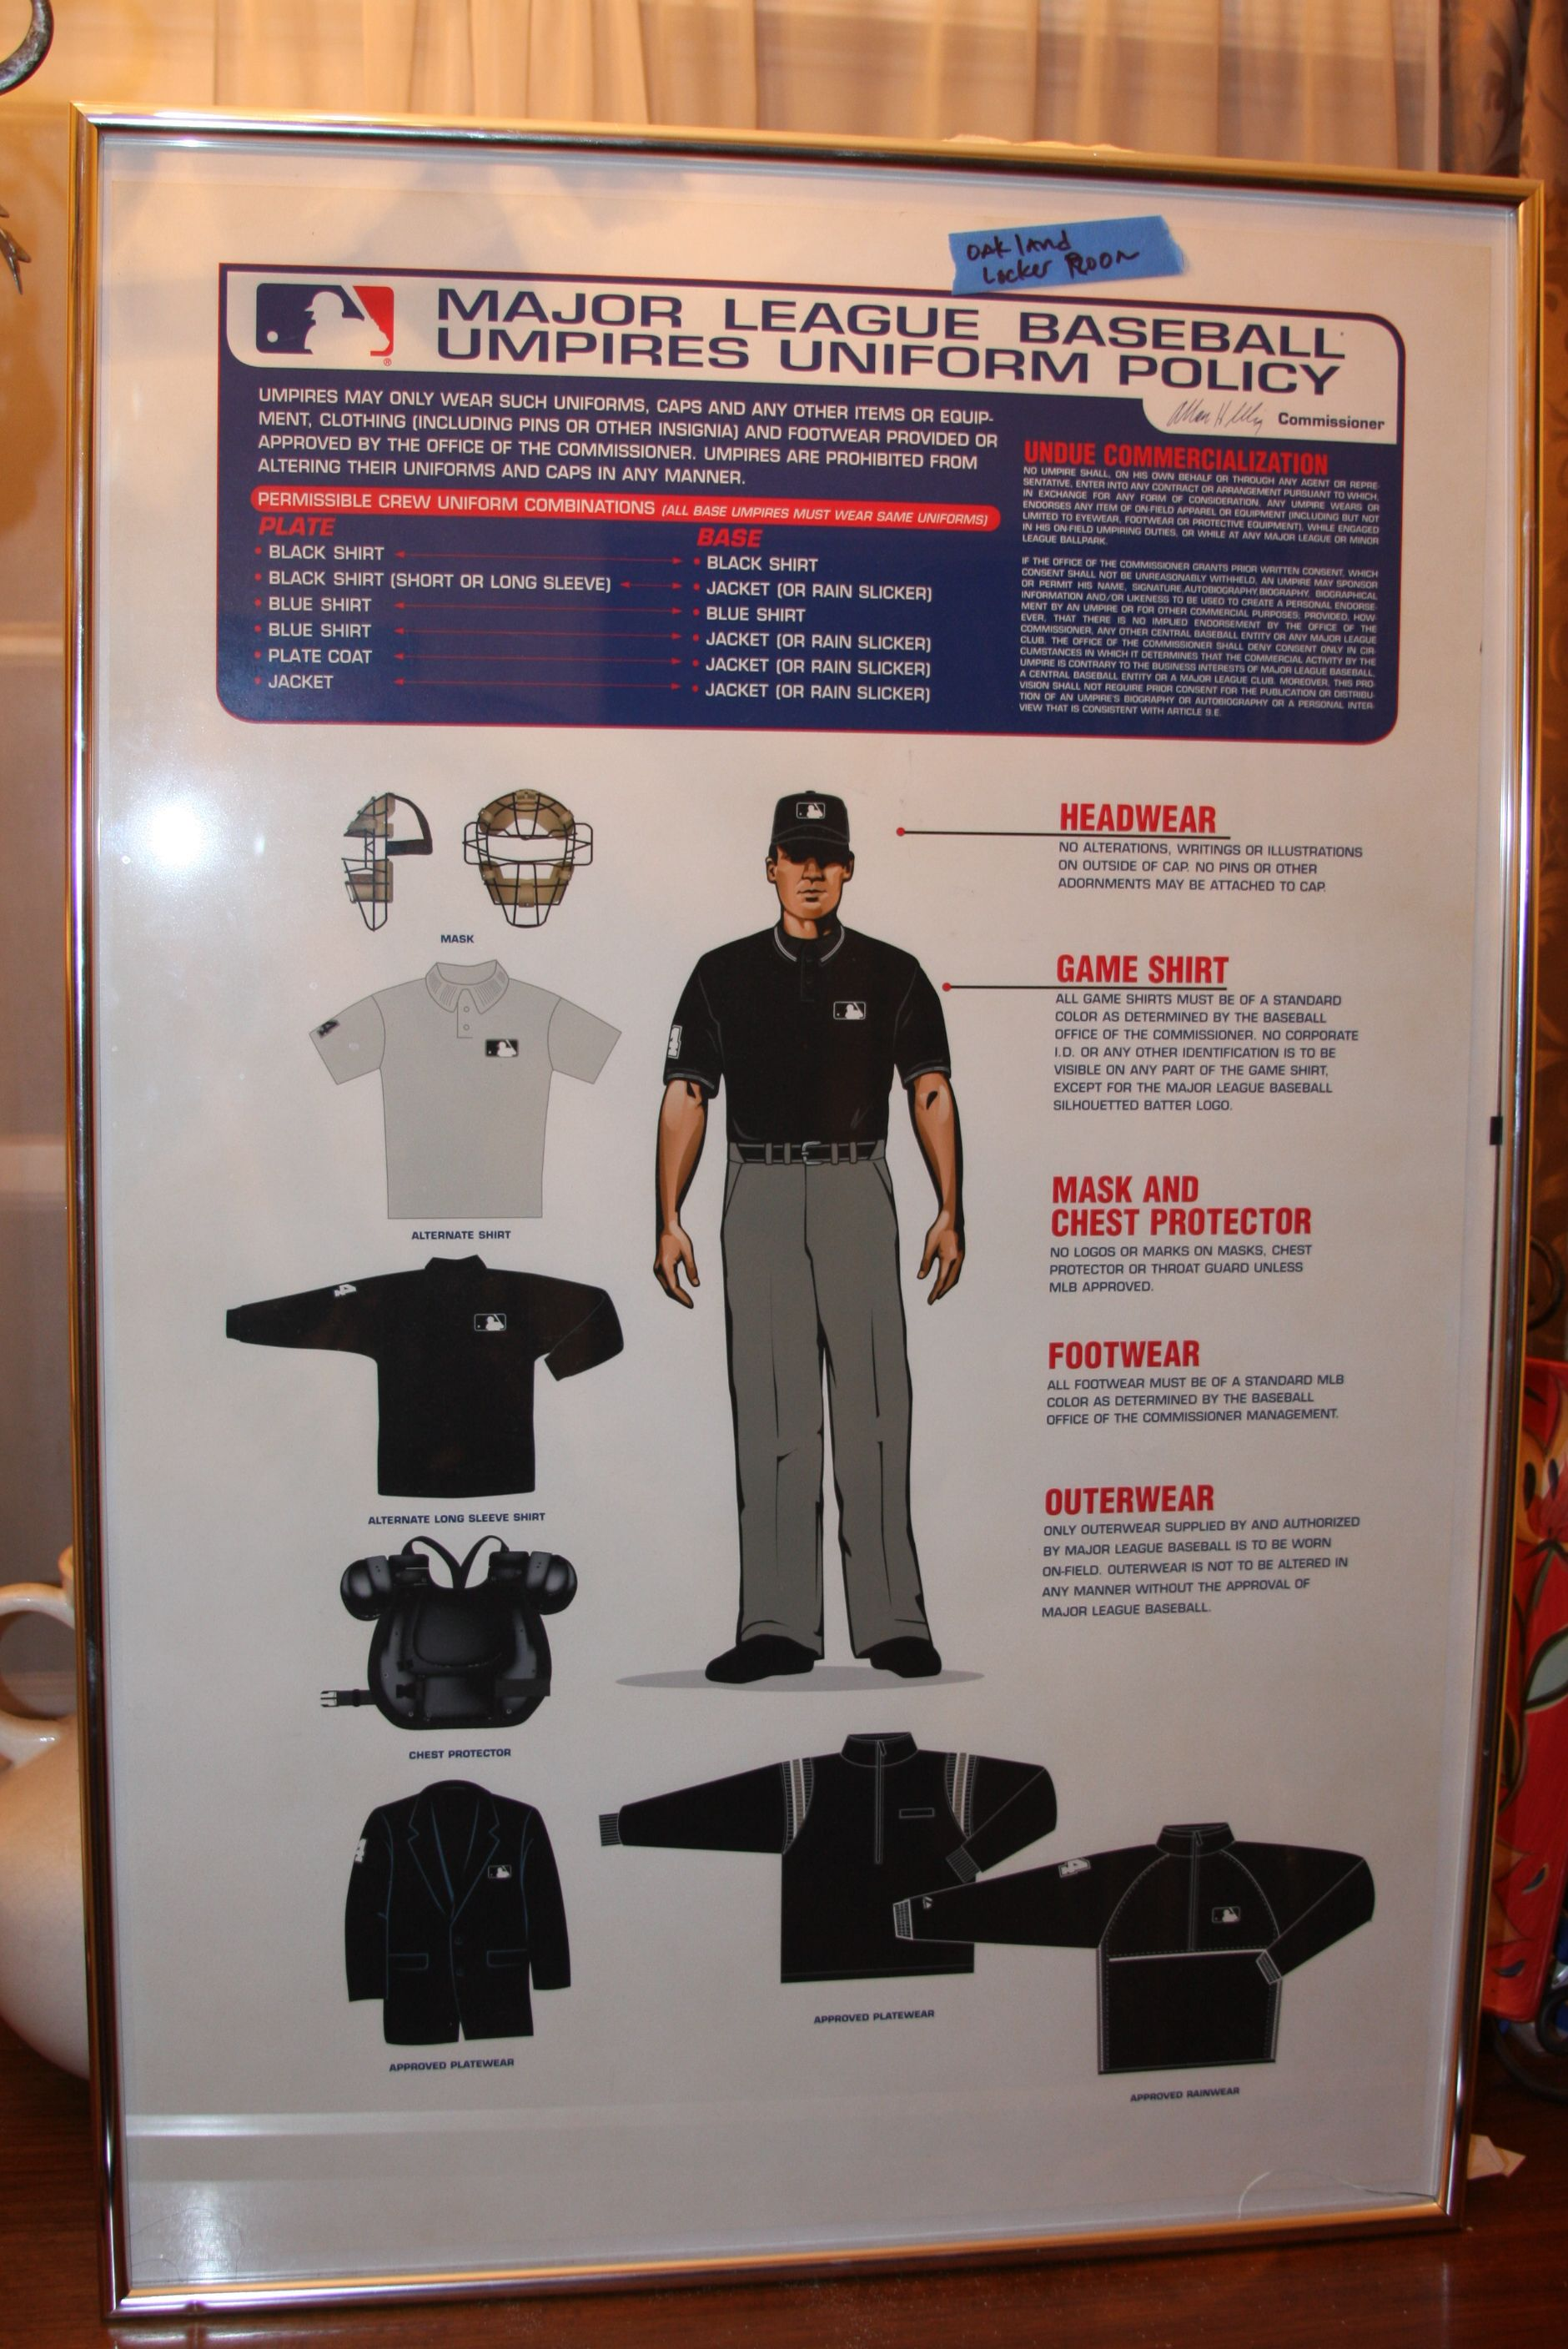 Movie Prop From Moneyball With Brad Pitt And About The Umpires Uniform Policy For The Mlb Umpires Gaming Shirt Uniform Policy Combination Black